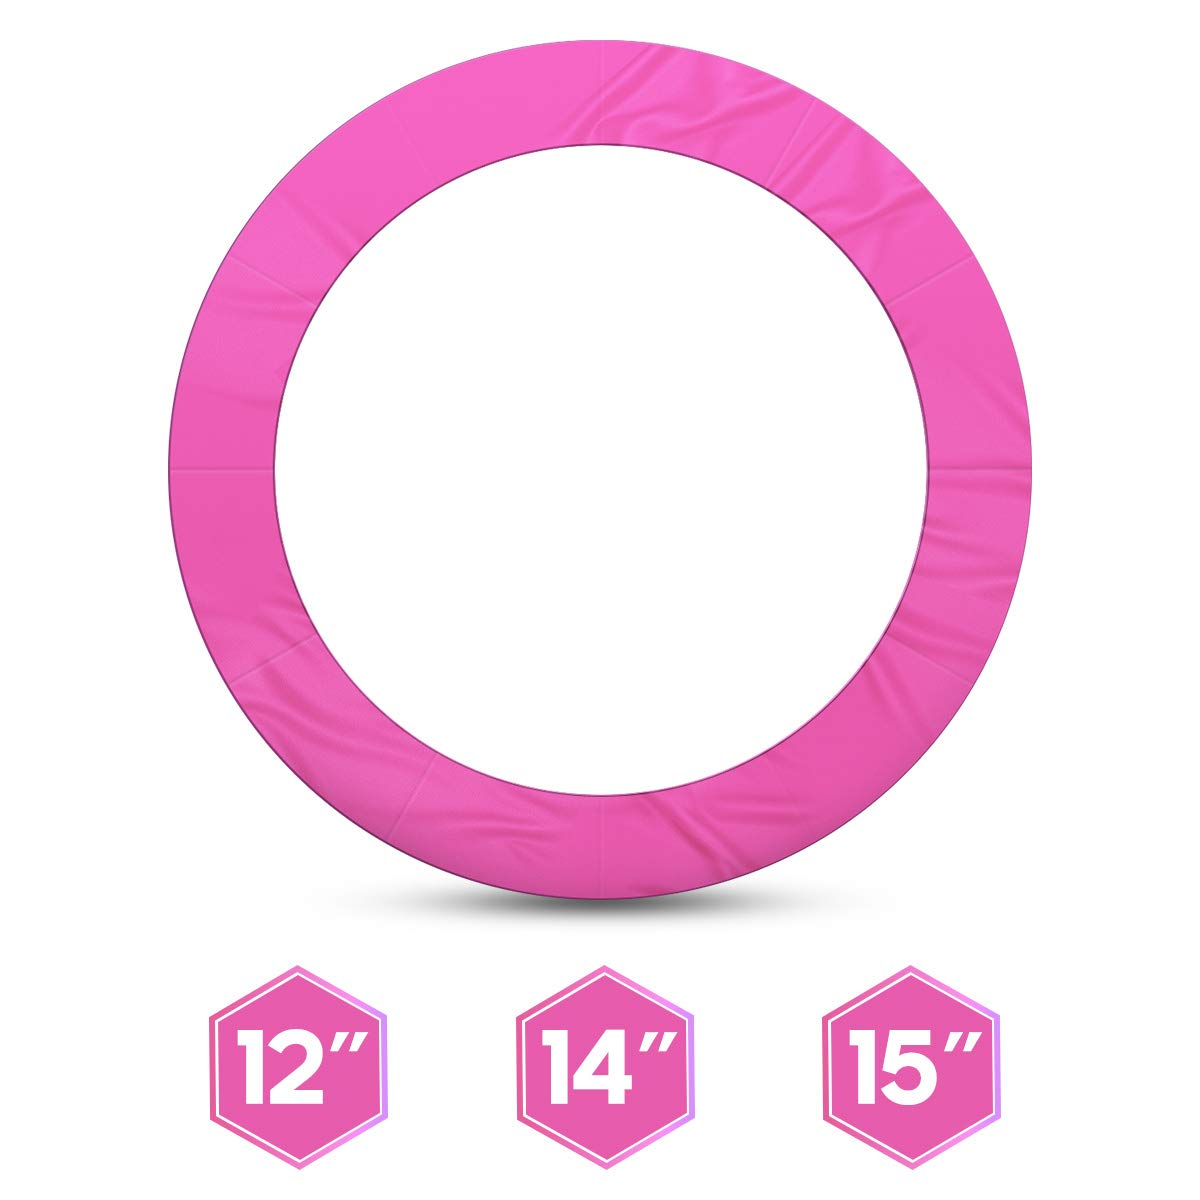 1INCH 12FT Trampoline Pad Pink Jumpking Trampoline Pad Replacement Safety Pad PVC Foam Waterproof Round Spring Cover (Pink, 12 FT)